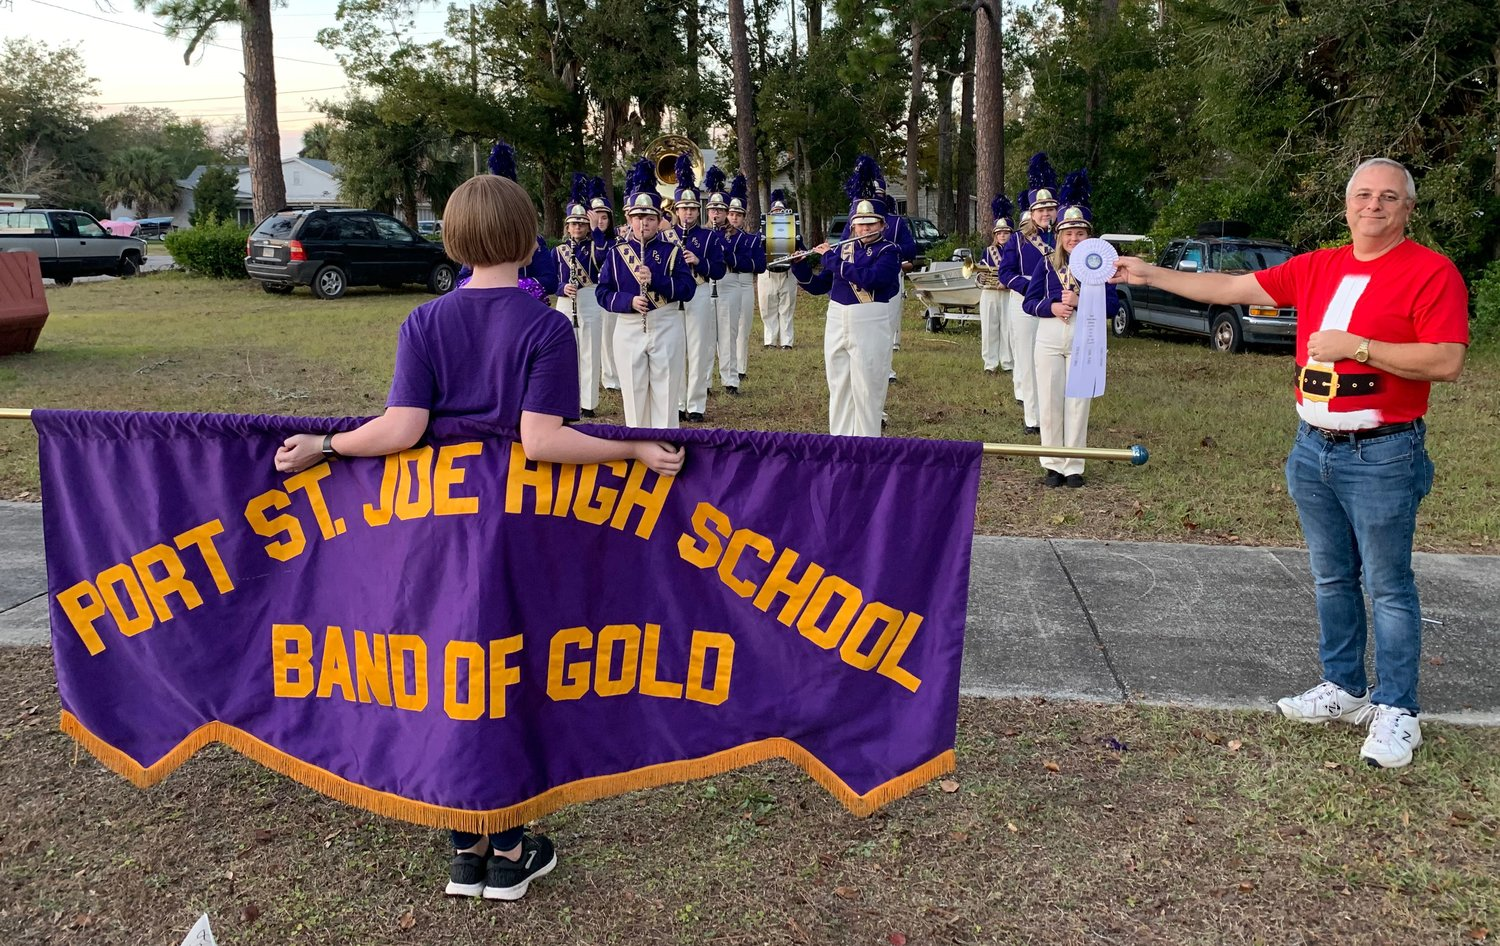 The Port St. Joe High School 'Band of Gold' took third place among Family and Friends.